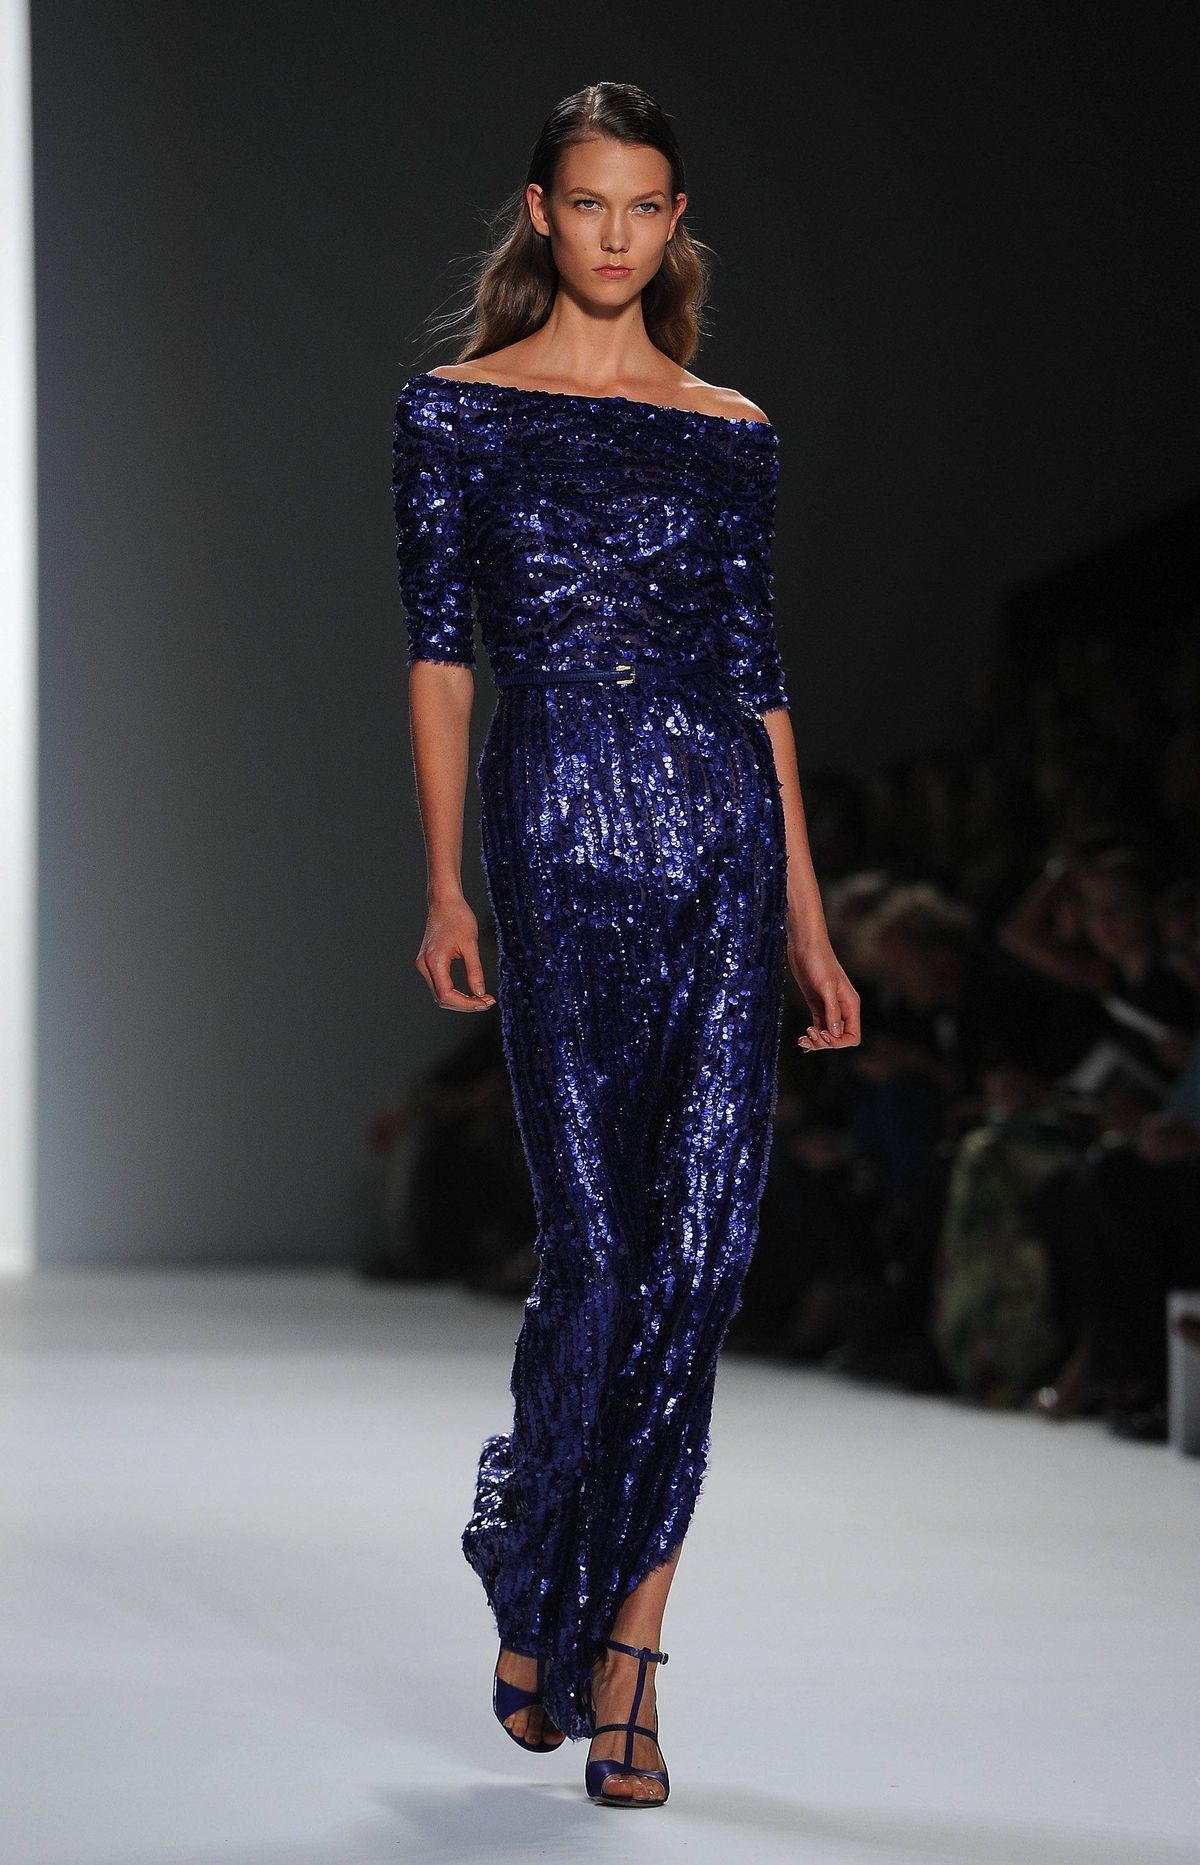 Kloss, a designer darling and runway fixture, closed the Elie Saab show in a lapis-blue sequin gown. Which means she also closed Paris Fashion Week – and the SS12 fashion season, for that matter. A bientôt ... until February!